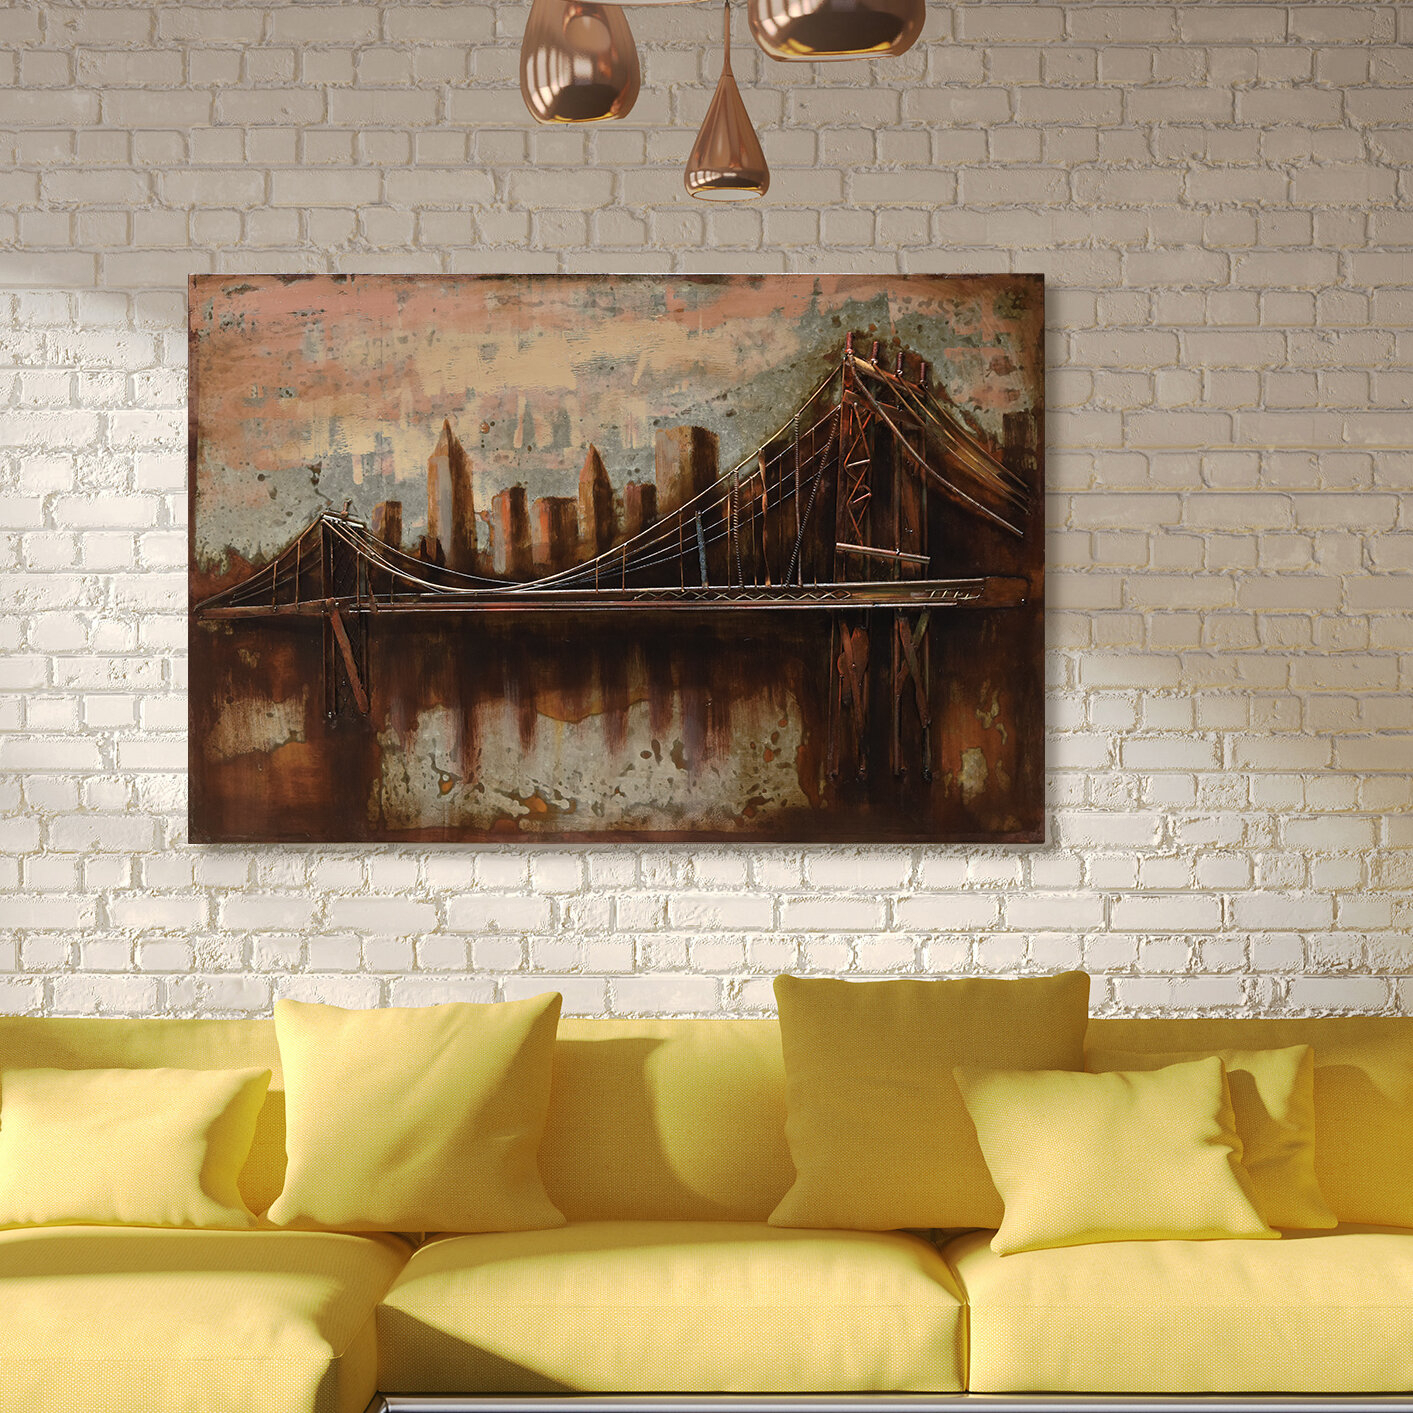 """bridgescape"" Mixed Media Iron Hand Painted Dimensional Wall Décor Throughout ""bridge To The City"" Mixed Media Iron Hand Painted Dimensional Wall Decor (View 6 of 30)"